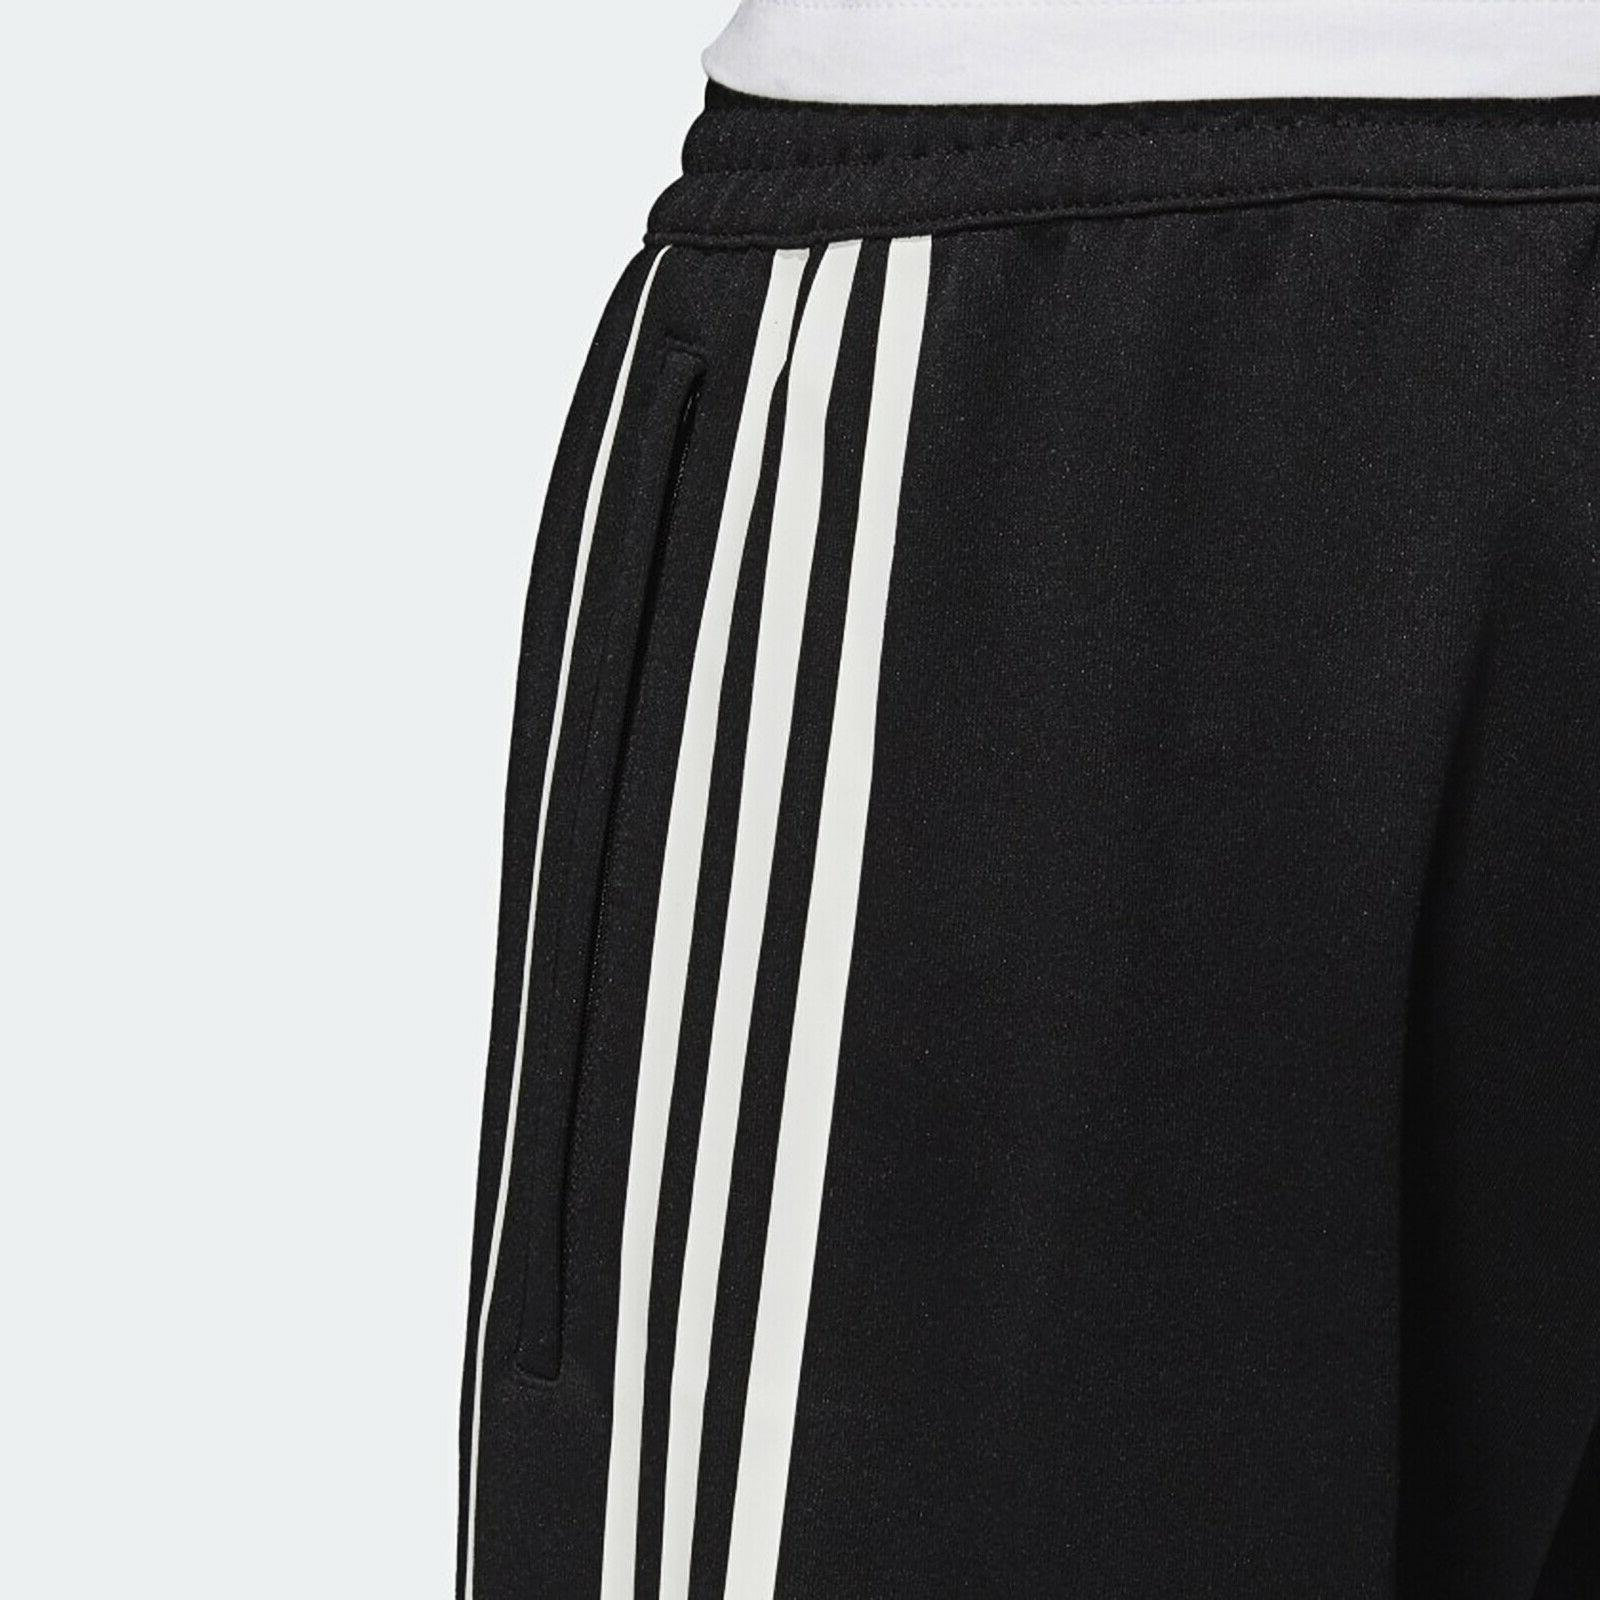 Adidas Trackpants Size